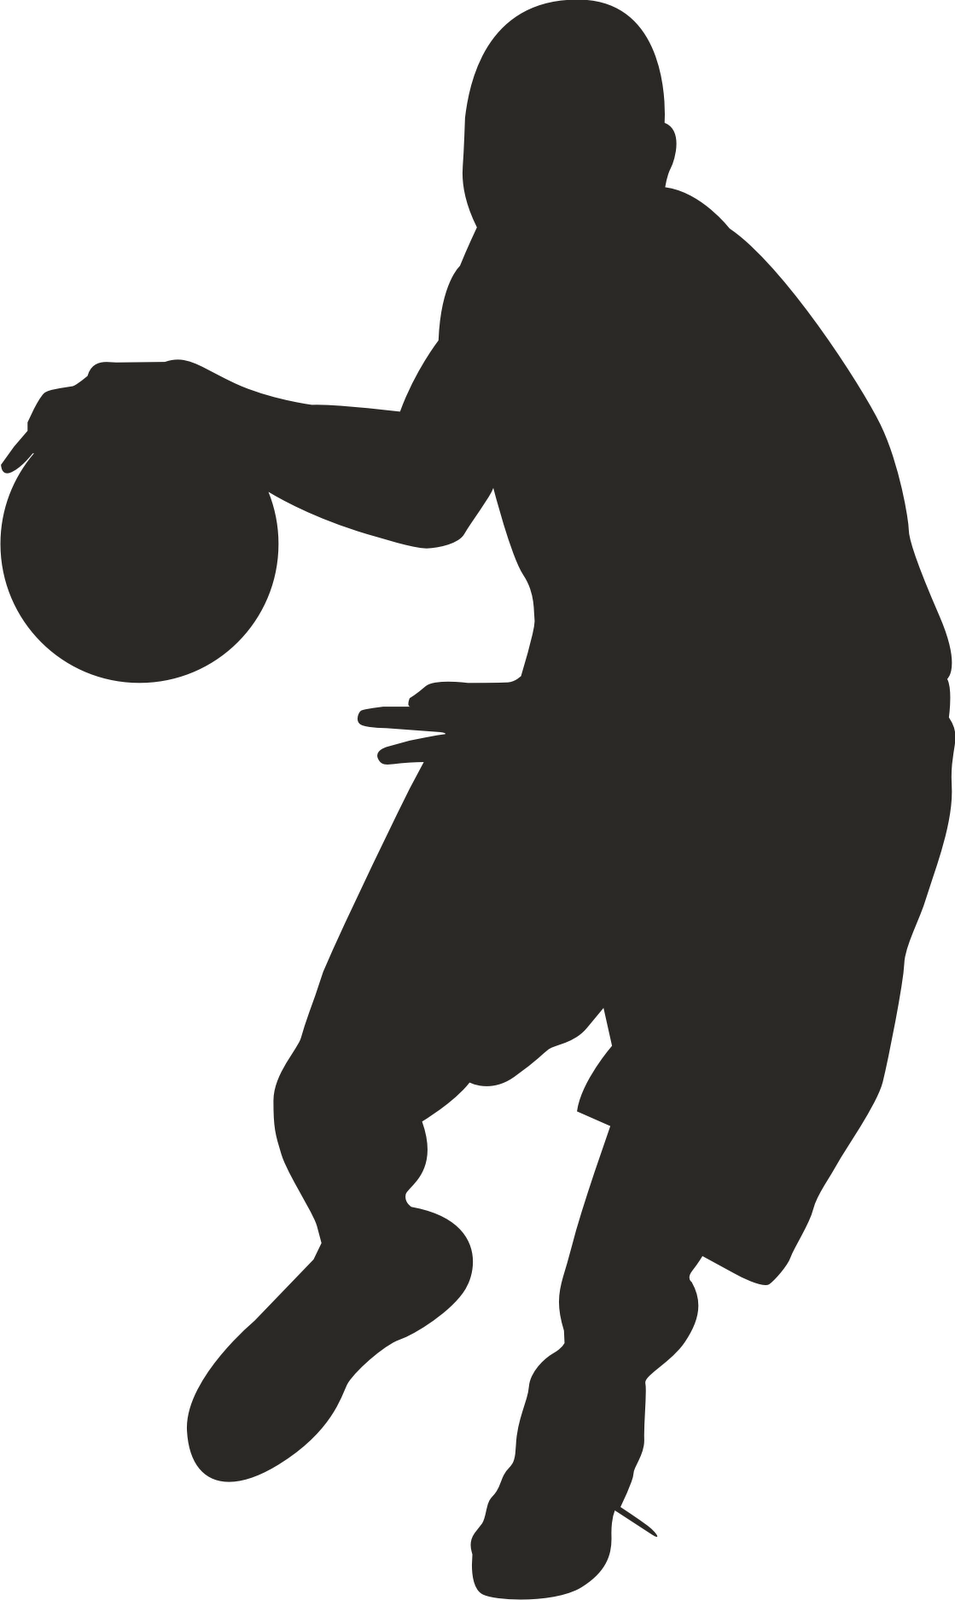 Crowd clipart basketball game Panda Basketball Clipart Clipart Images